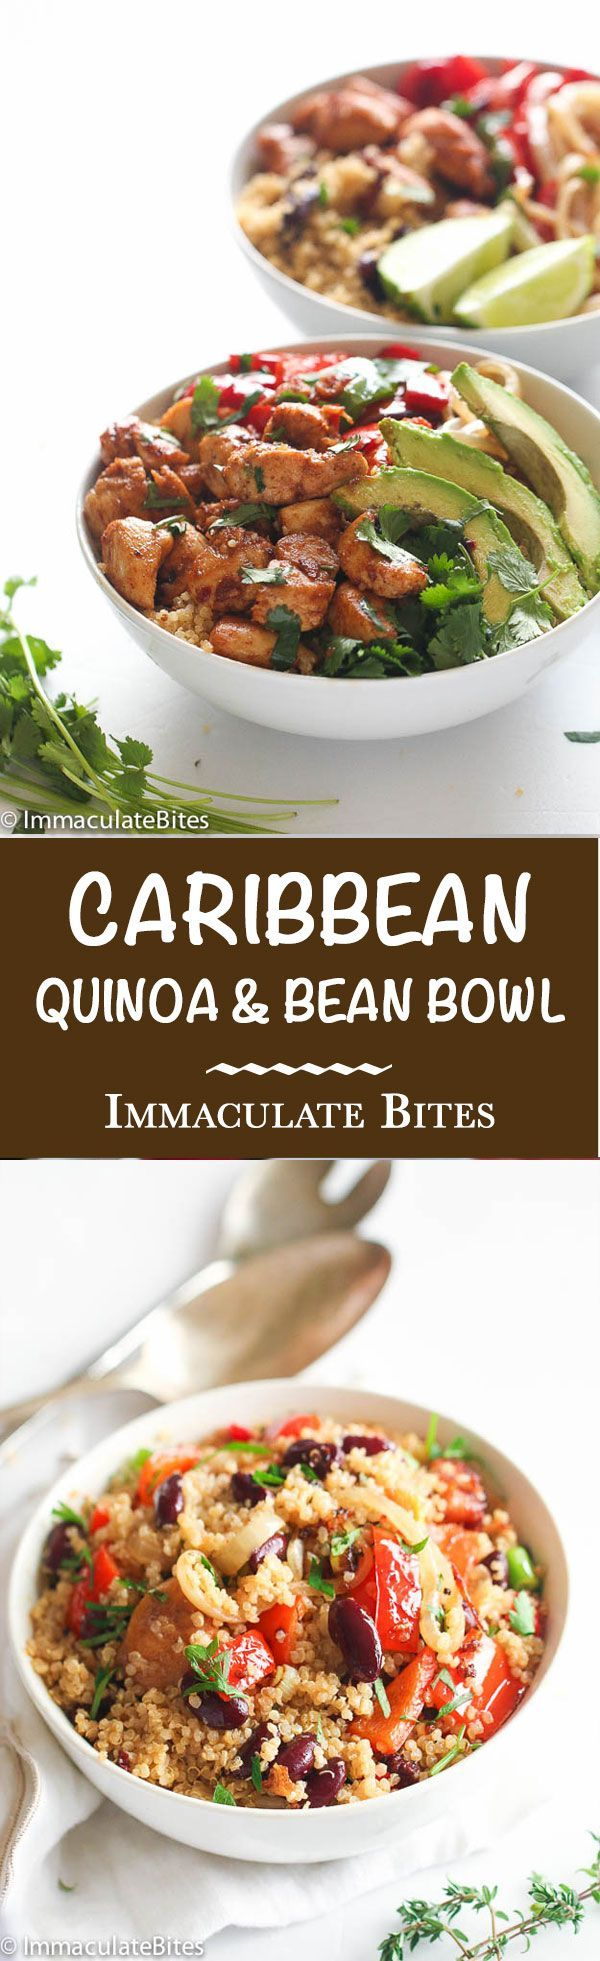 Caribbean Quinoa and beans Bowl - A lightened-up, Nutritious Caribbean Quinoa and beans that will keep you satisfied. - So healthy, Tasty and full of flavor